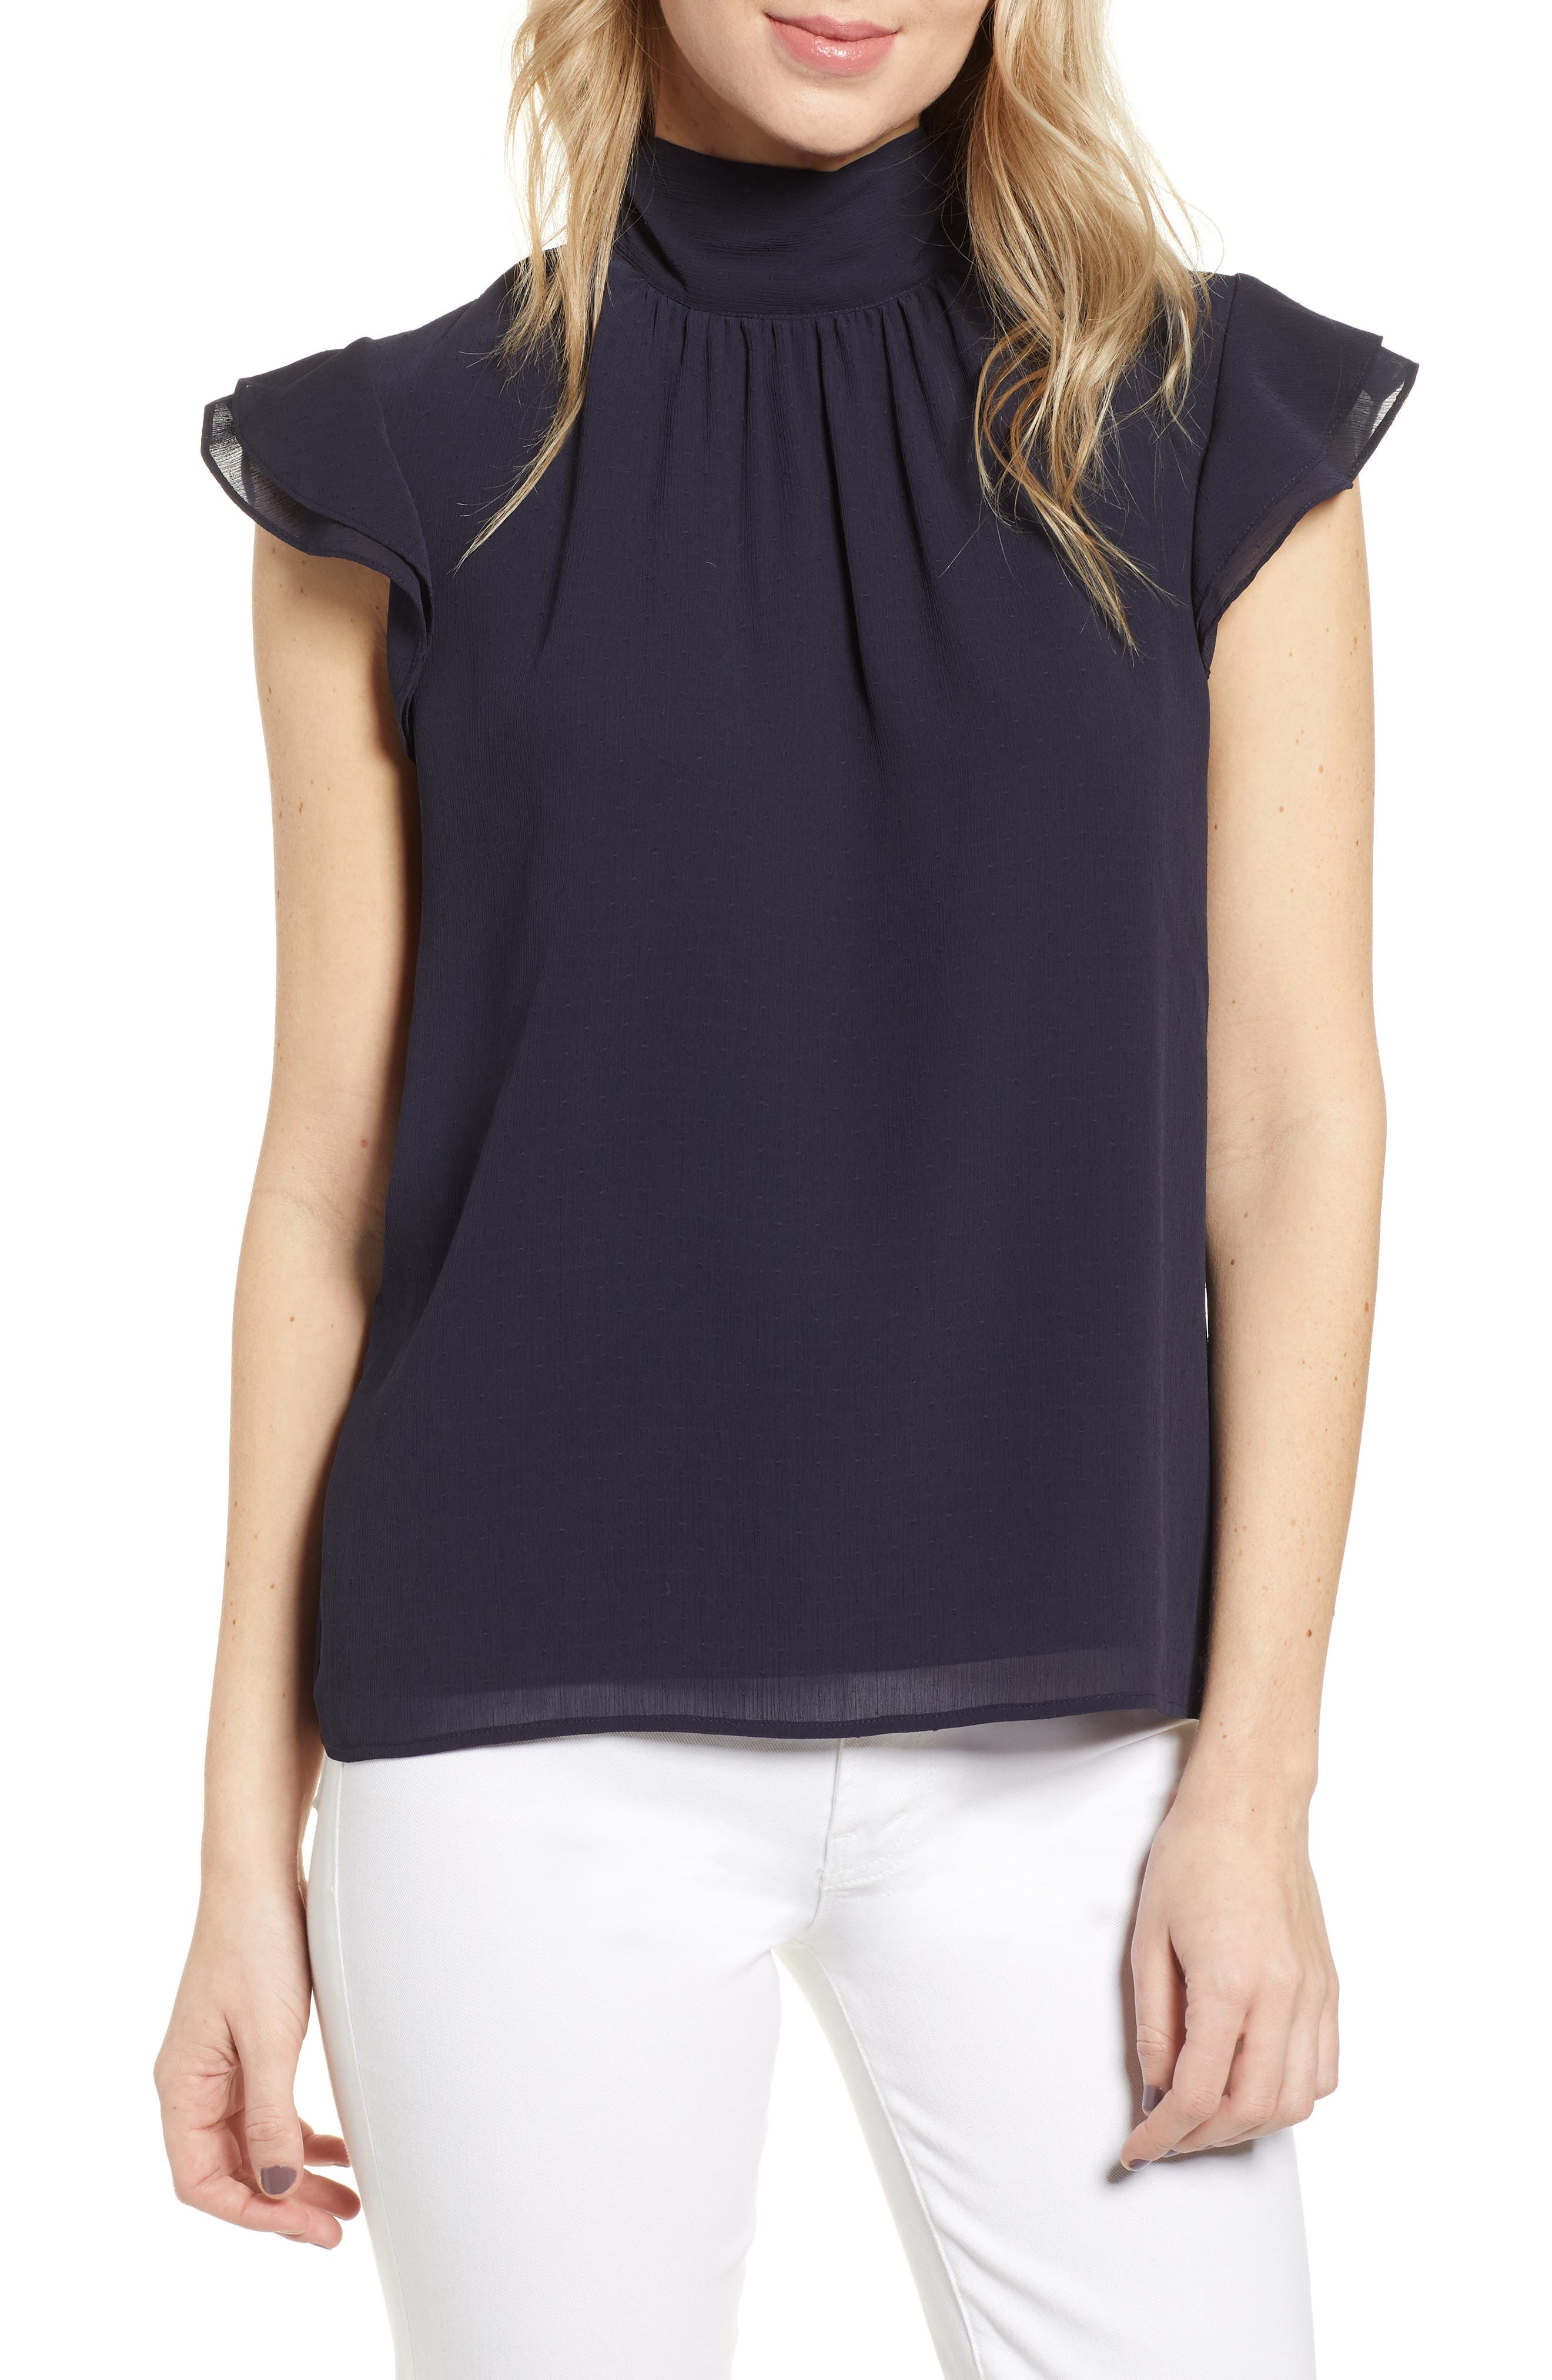 CHELSEA28, Dotted Crinkle Chiffon Top, Main thumbnail 1, color, NAVY NIGHT